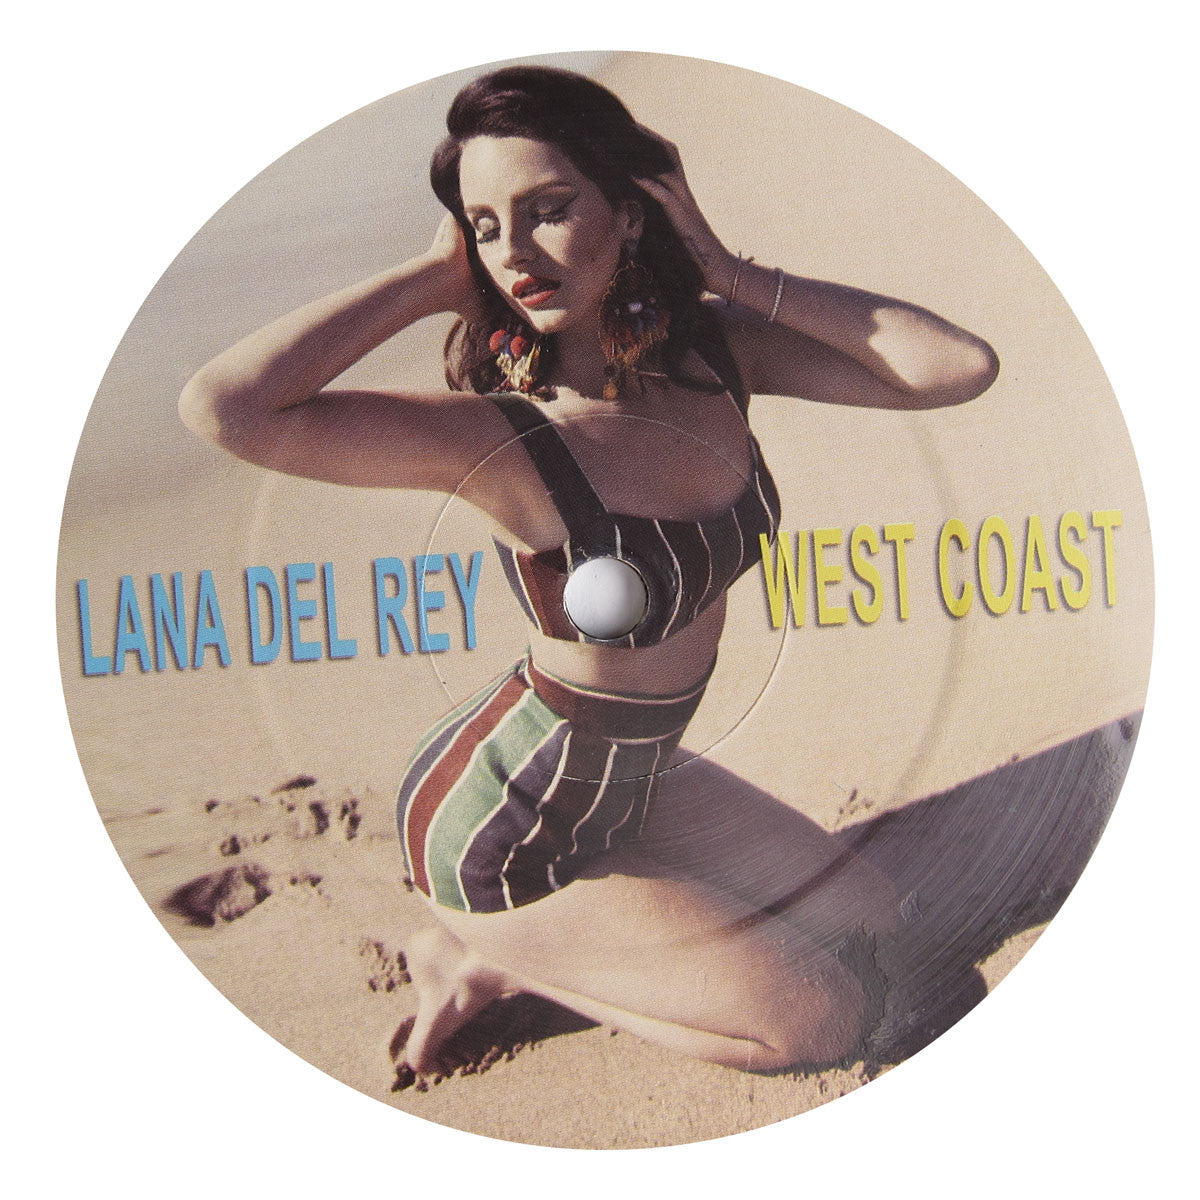 Lana Del Rey: West Coast Remixes (Four Tet, MK, Black Keys) Vinyl 12""